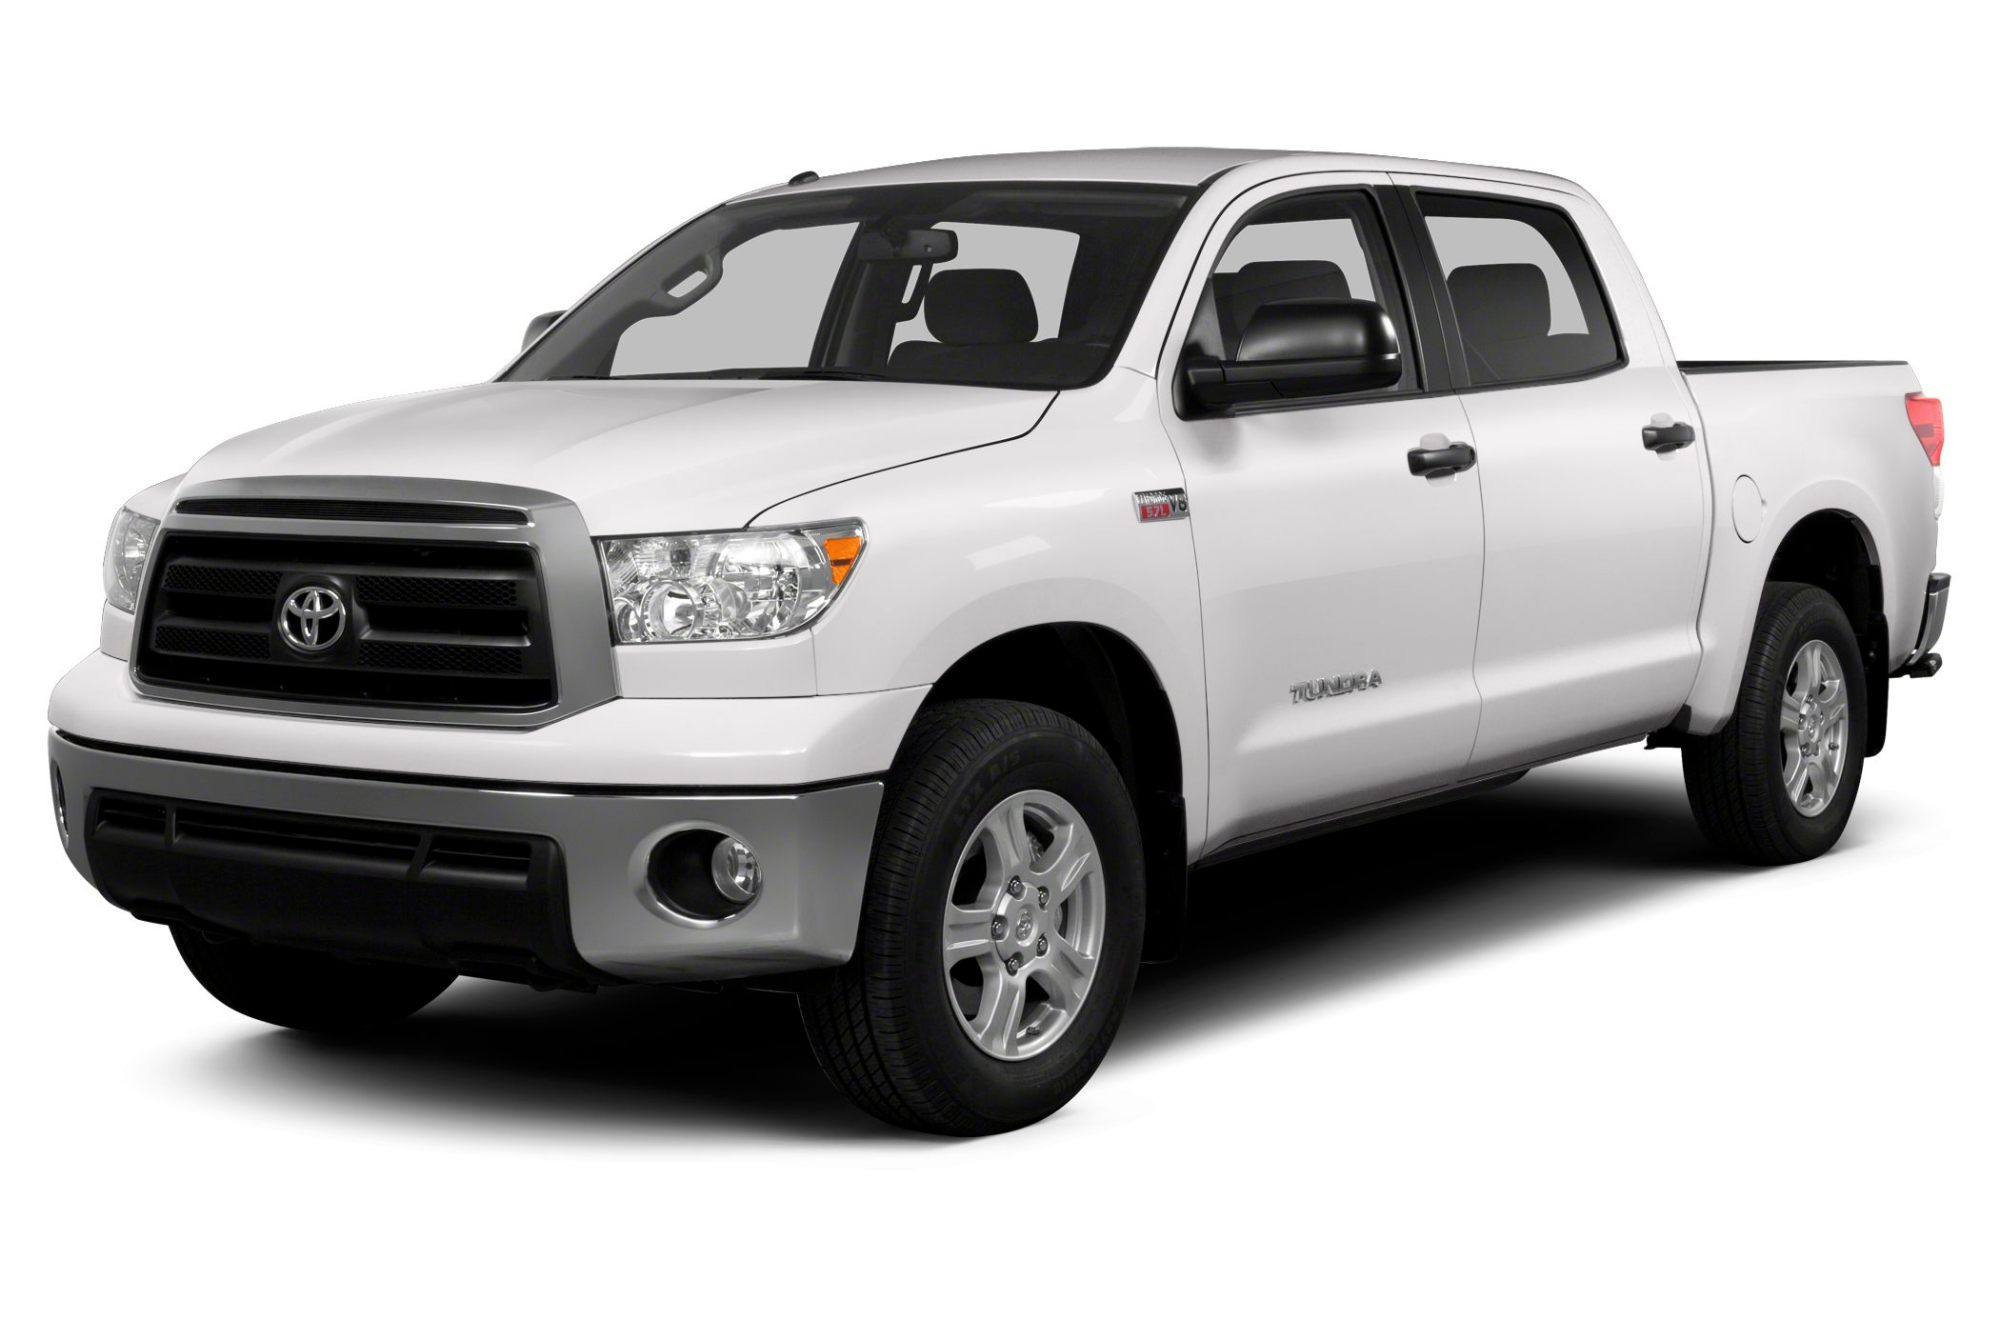 hight resolution of 2013 toyota tundra platinum 5 7l v8 4x4 crew max 5 6 ft box 145 7 in